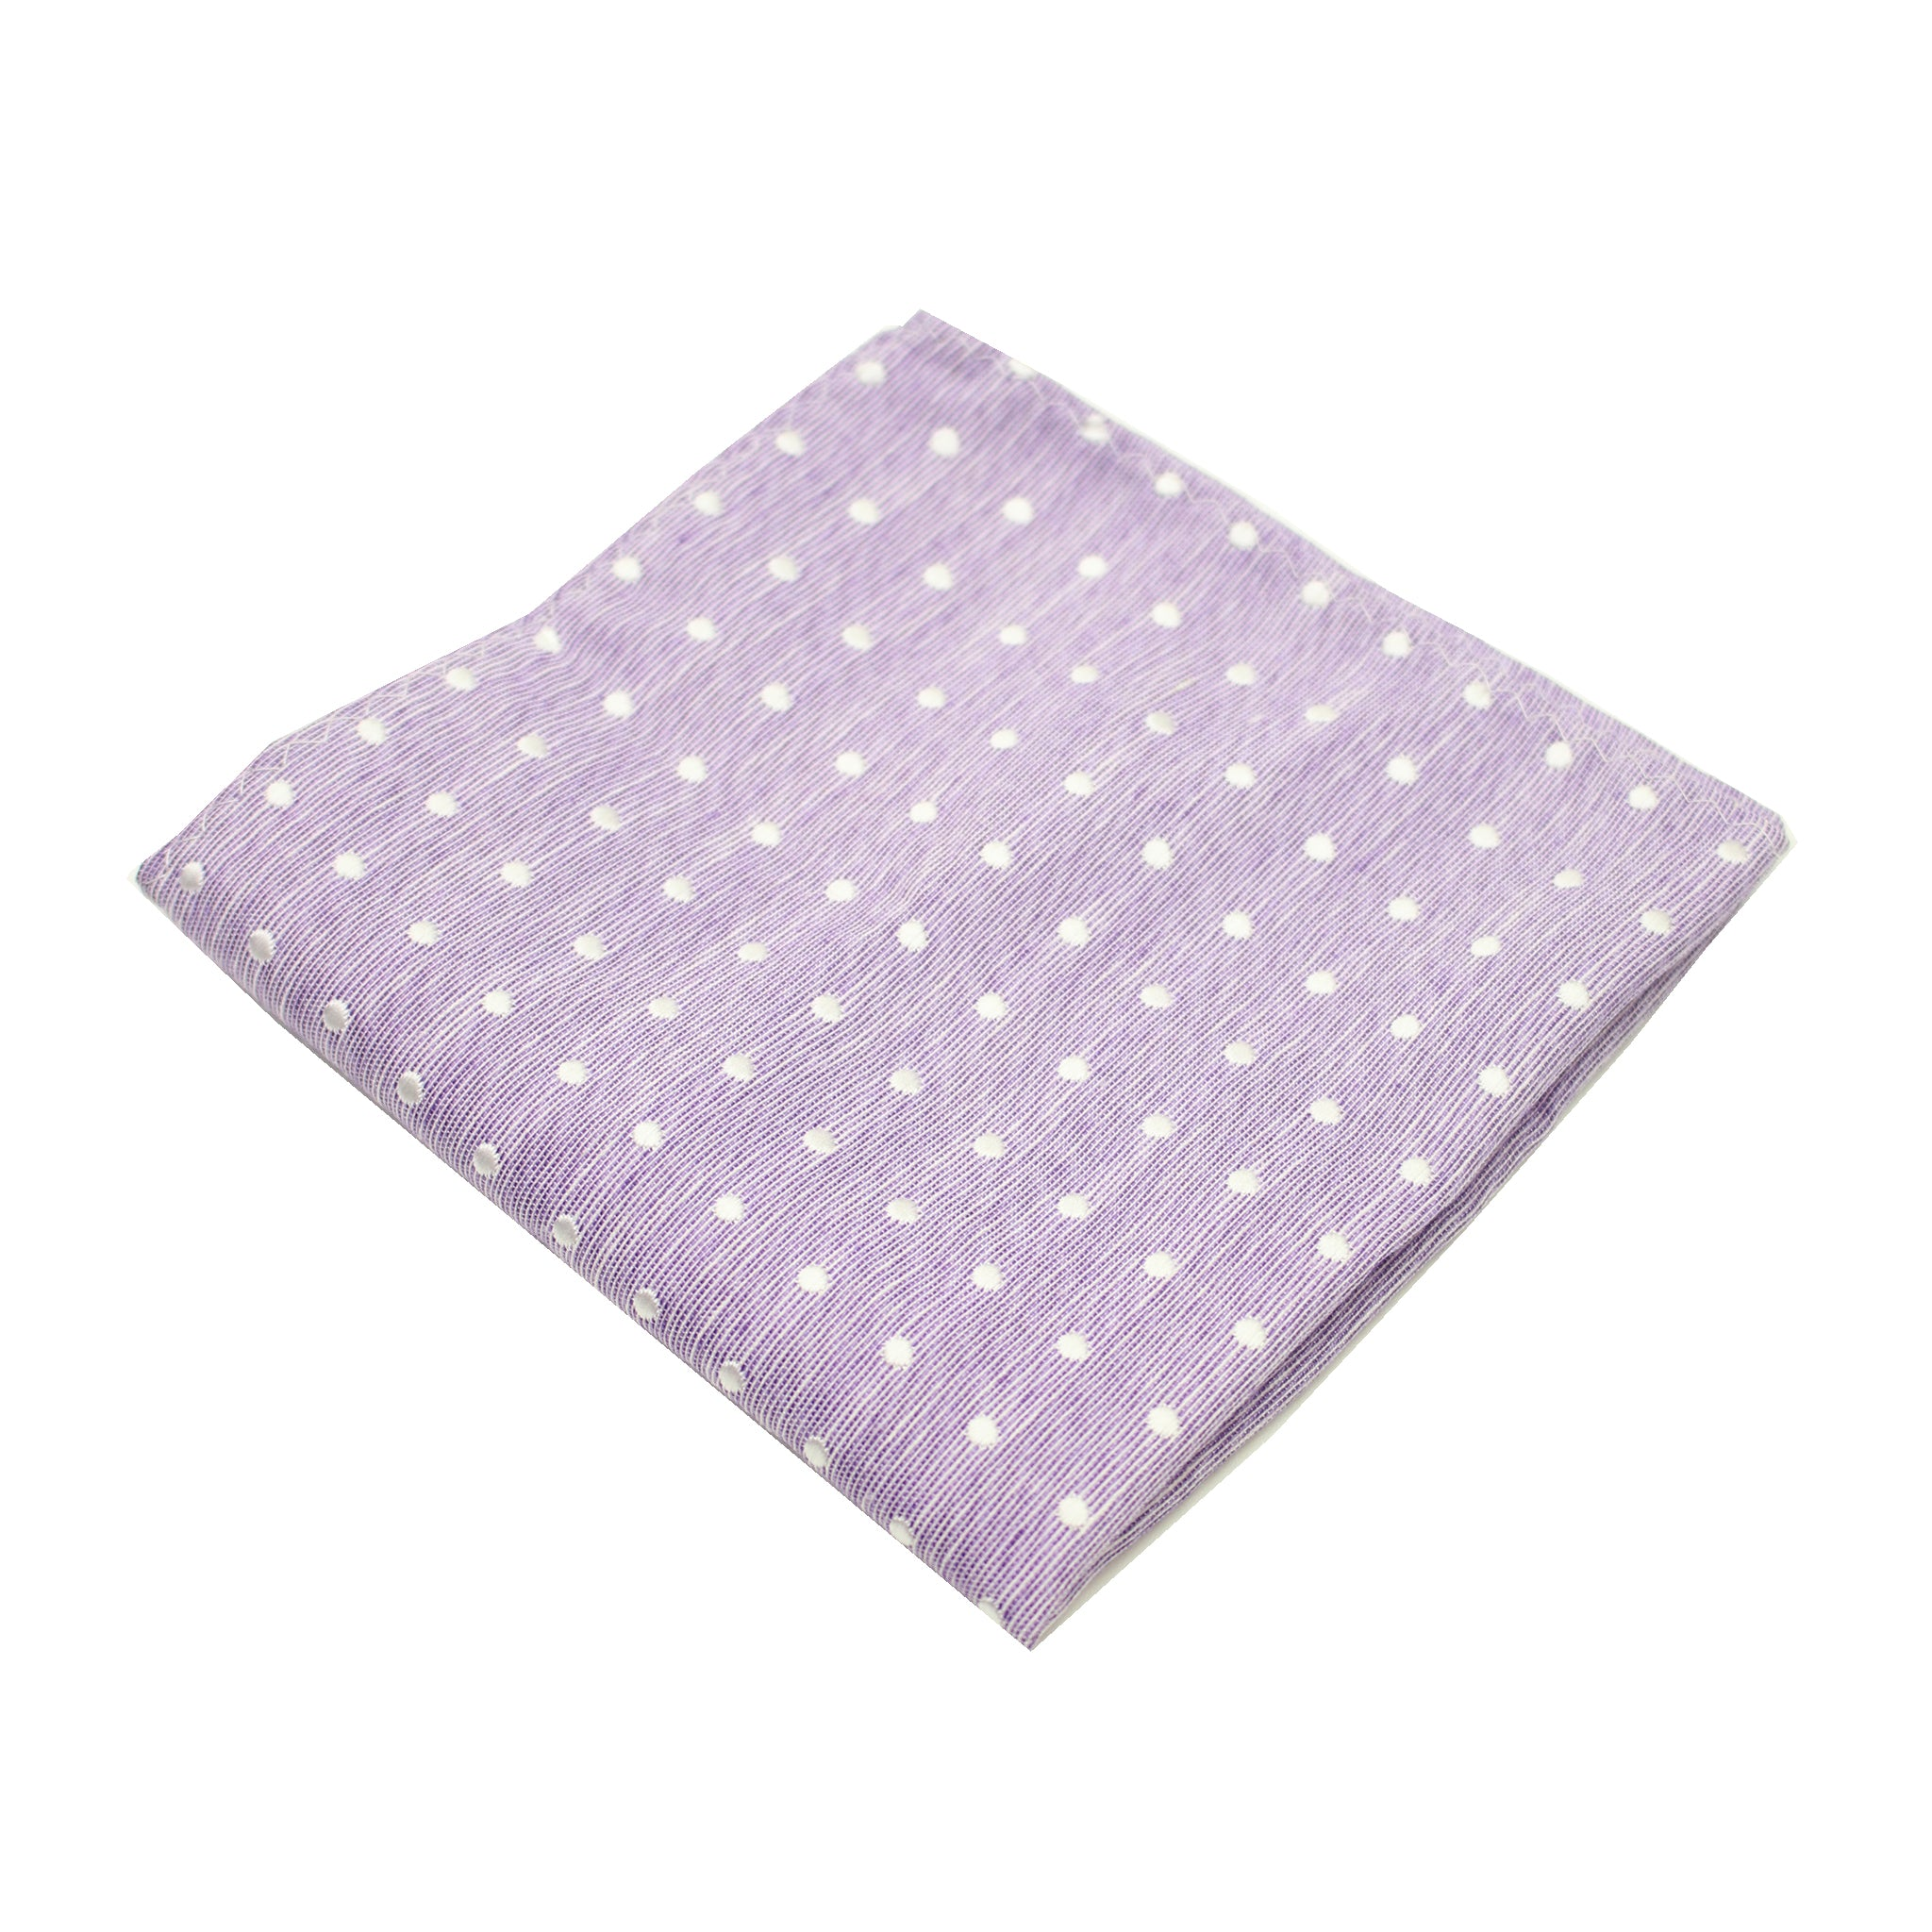 Lavender & White Polkadot Pocket Square